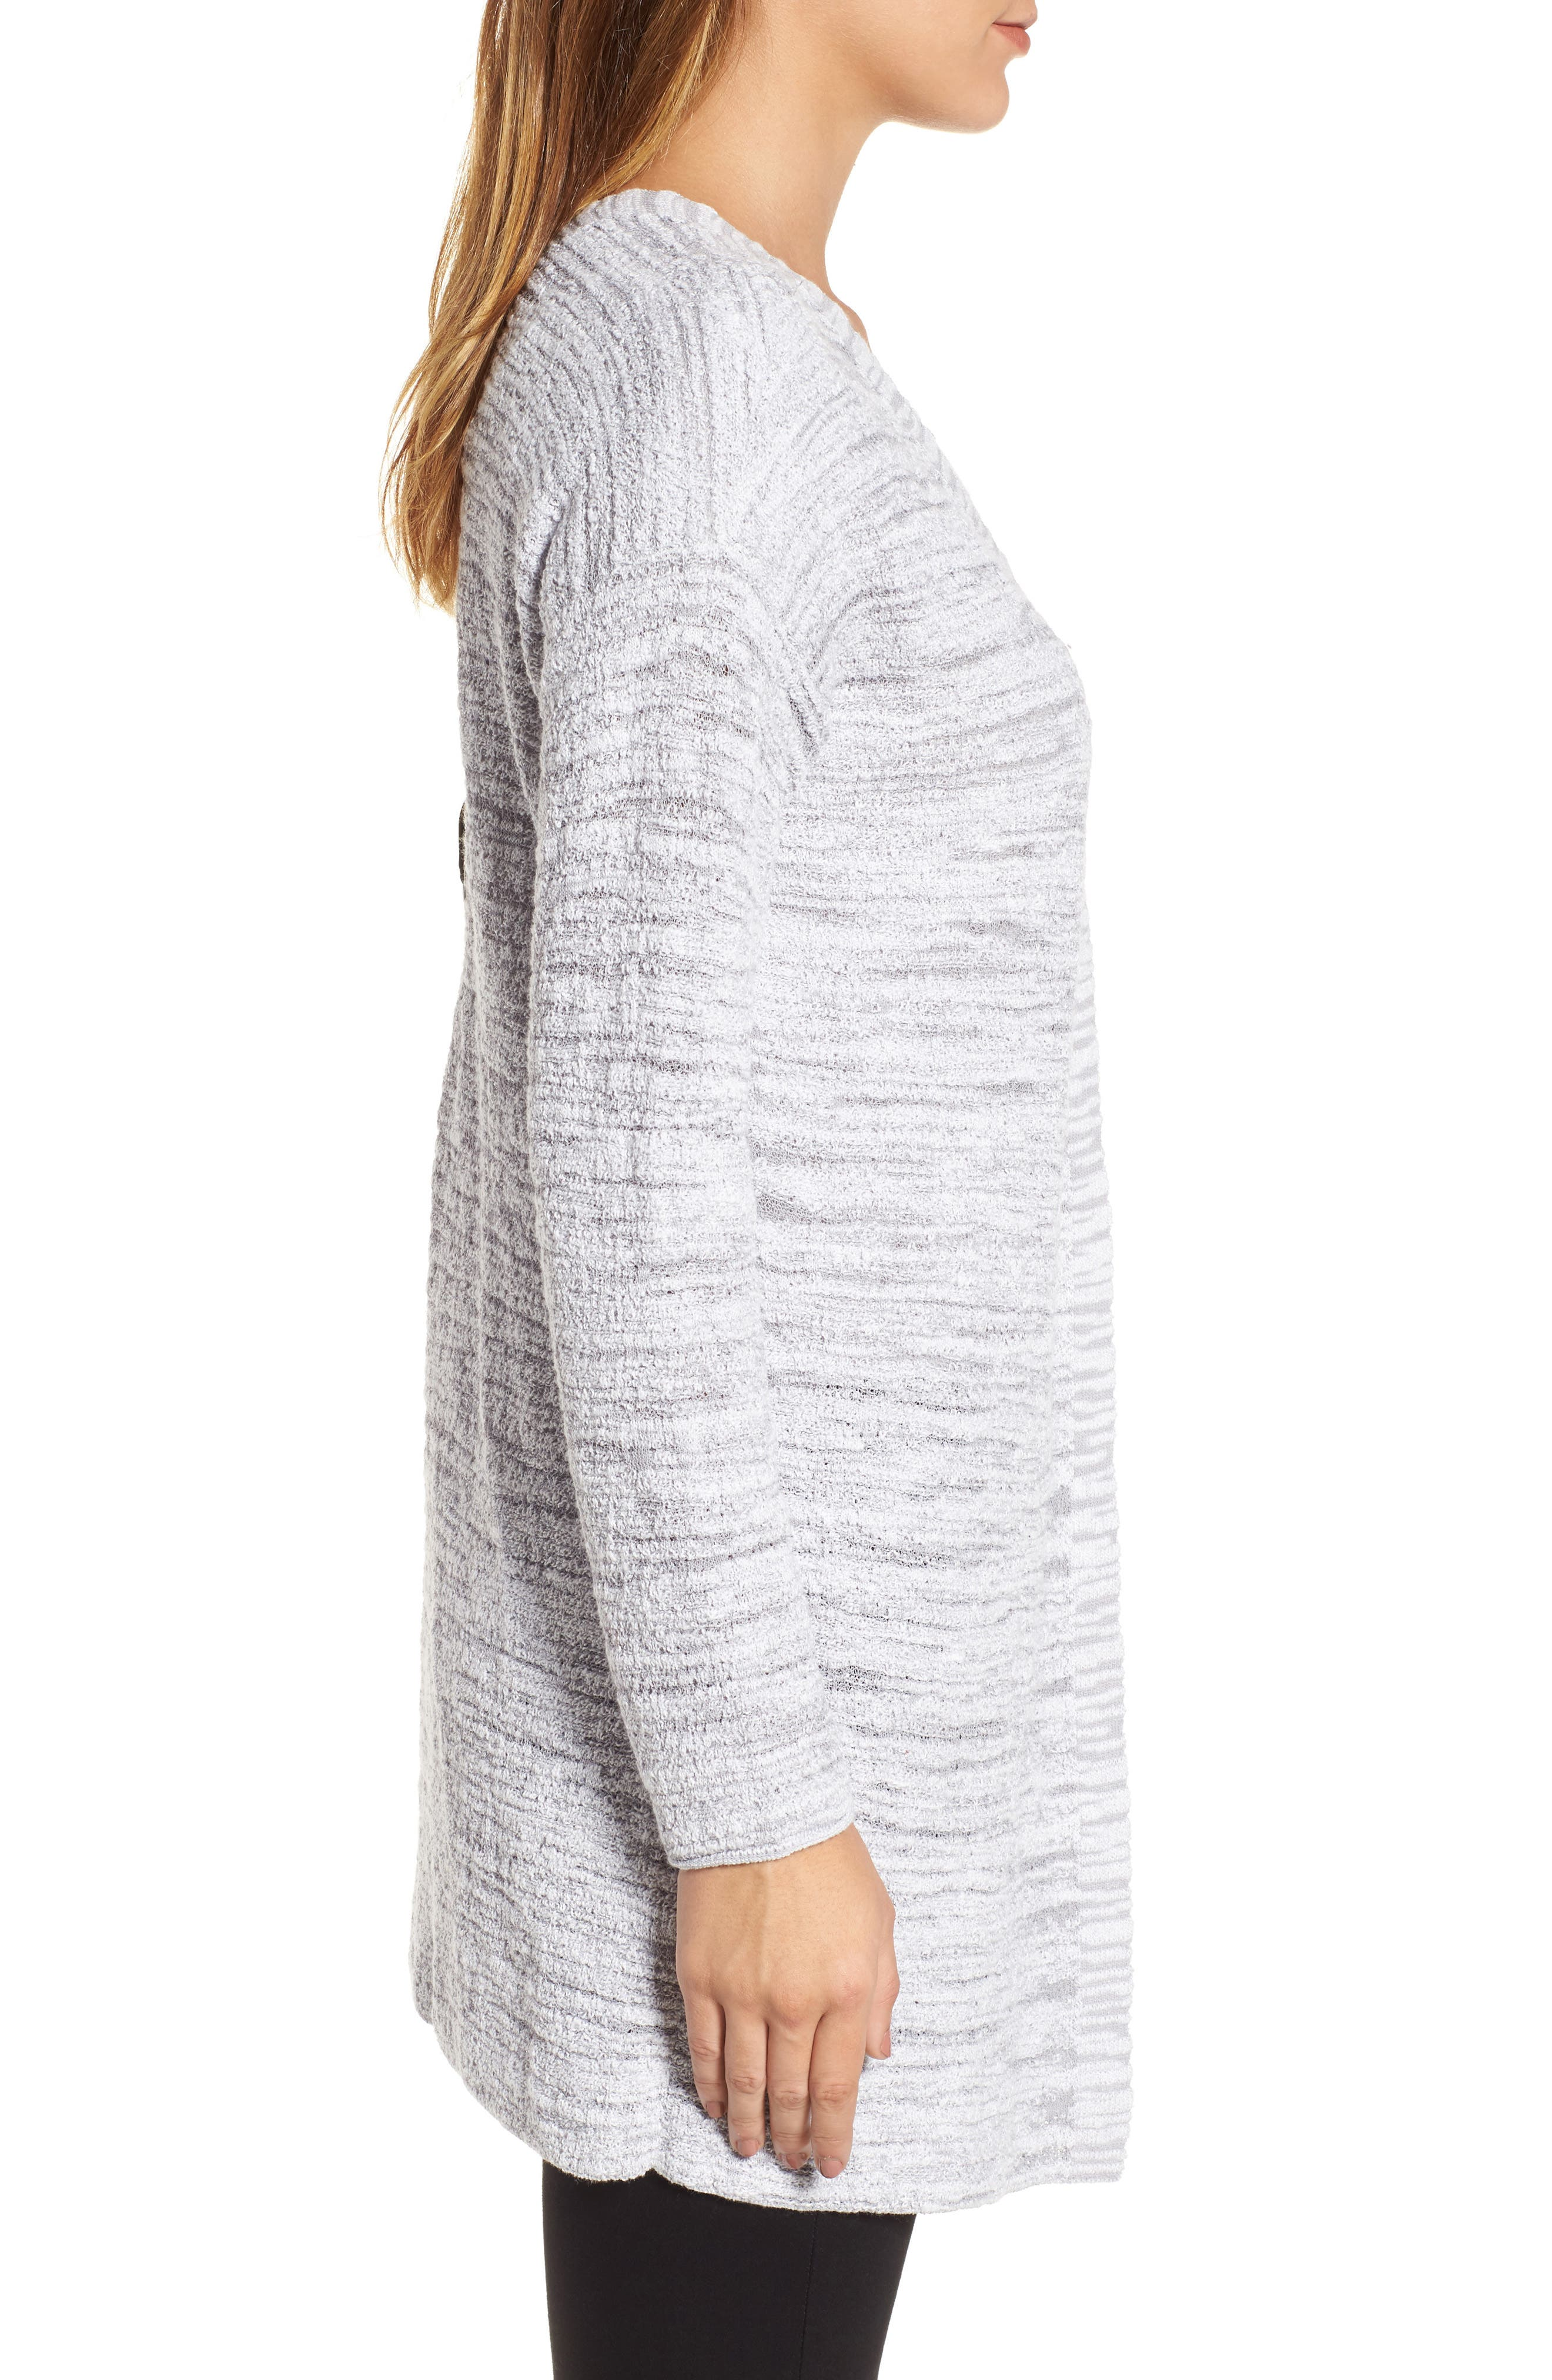 Lace It Back Cardigan,                             Alternate thumbnail 3, color,                             Icy Grey